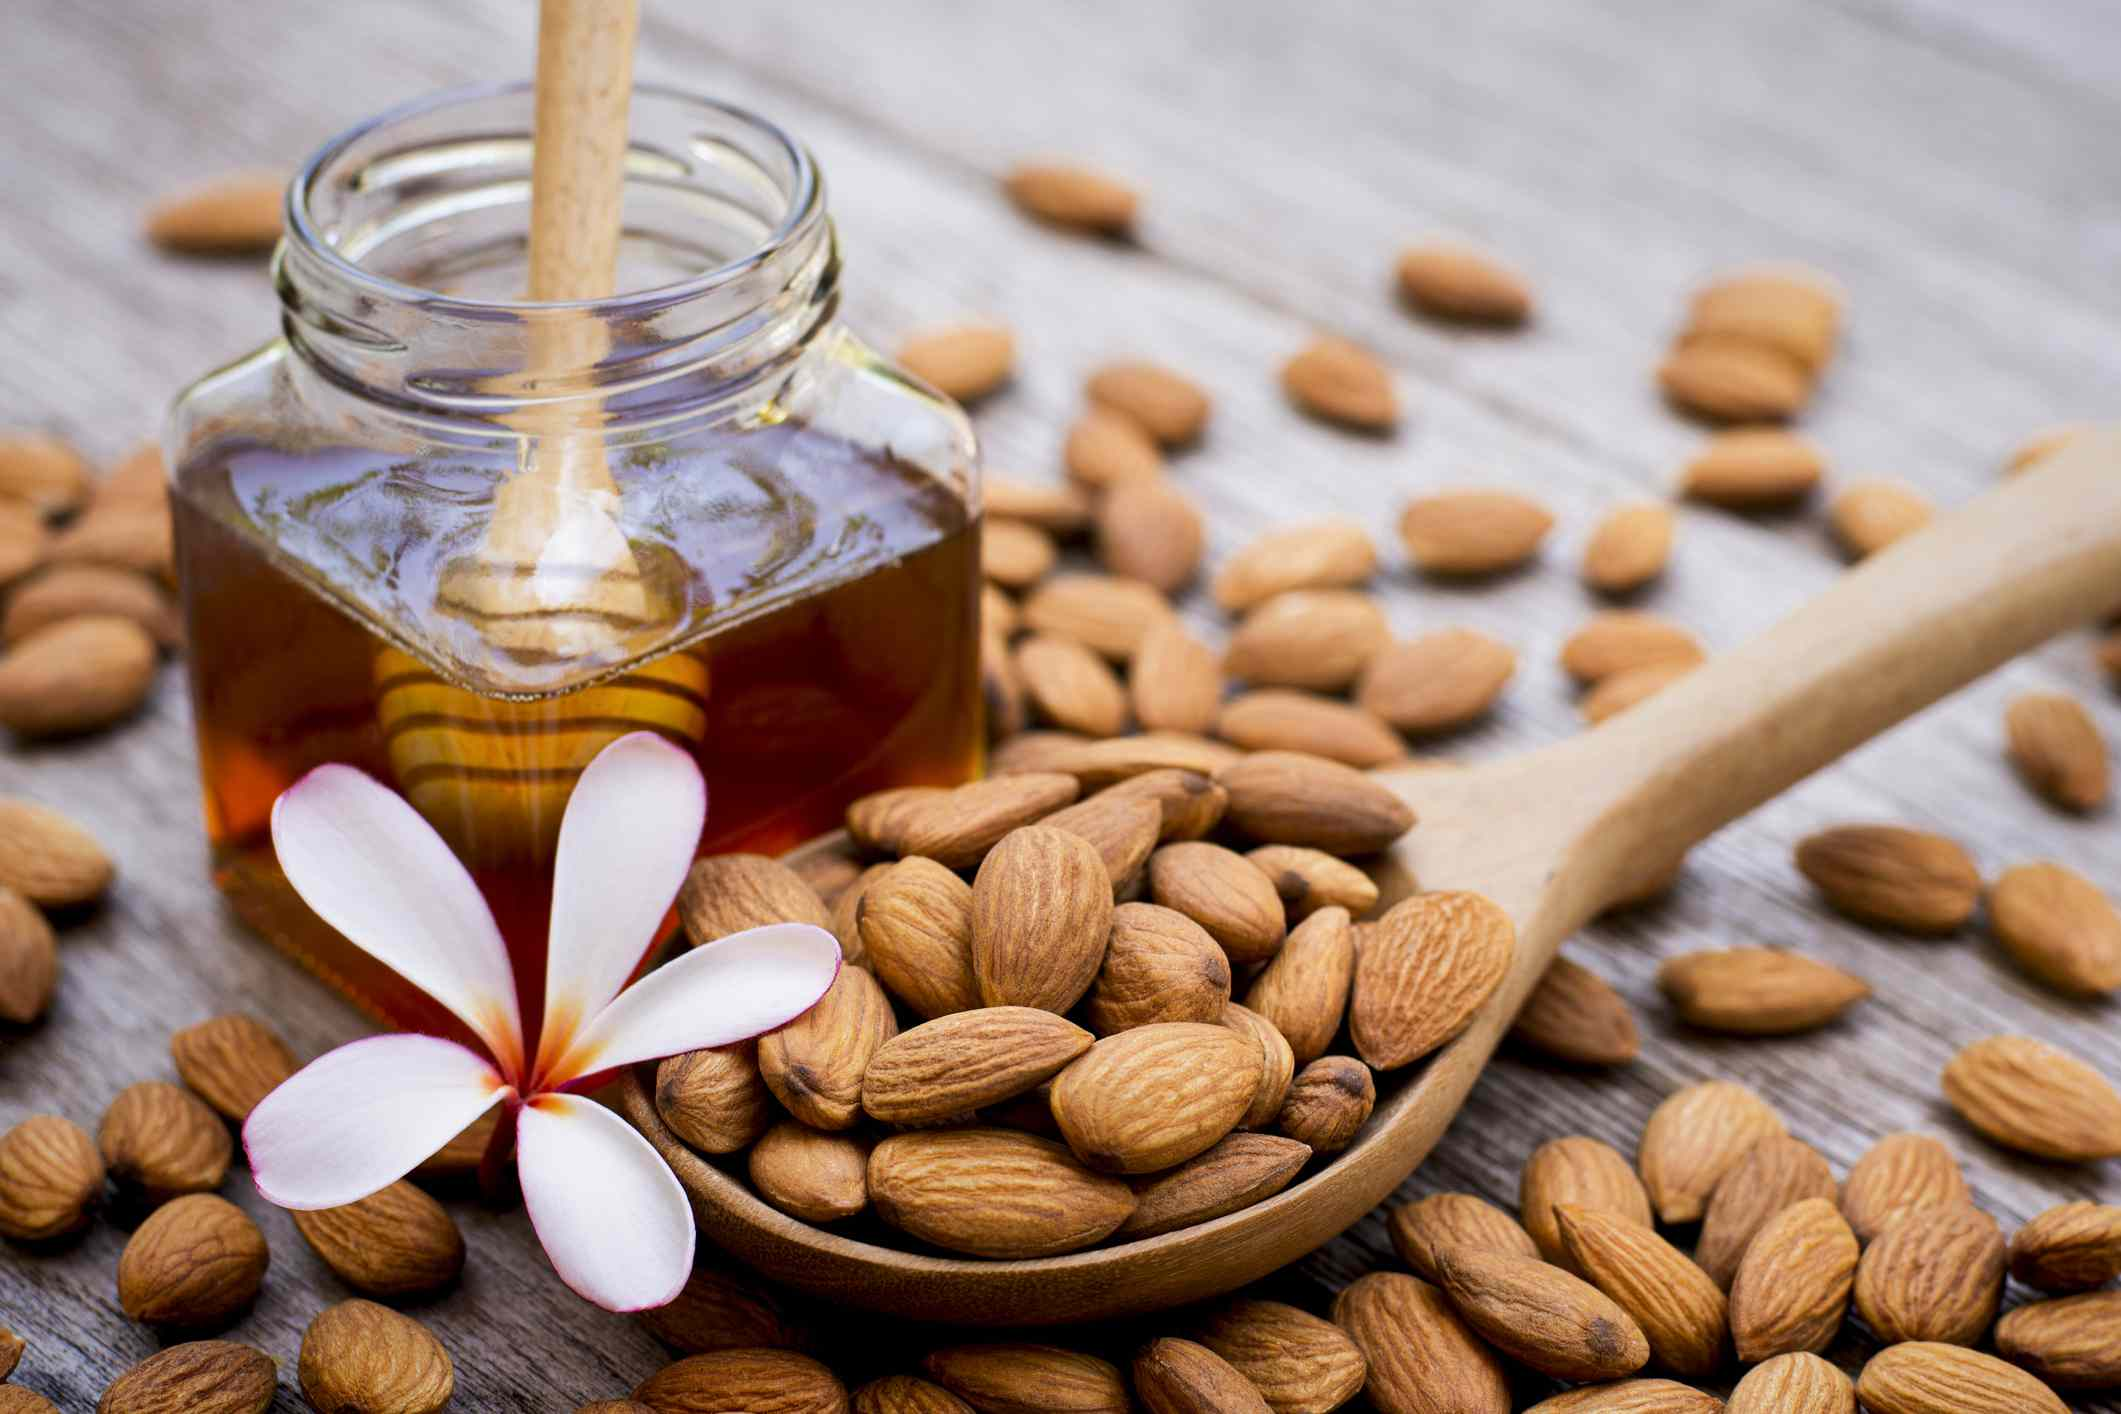 Closeup almond nuts in wooden spoon and pure gold honey in glass jar isolated on wood table background